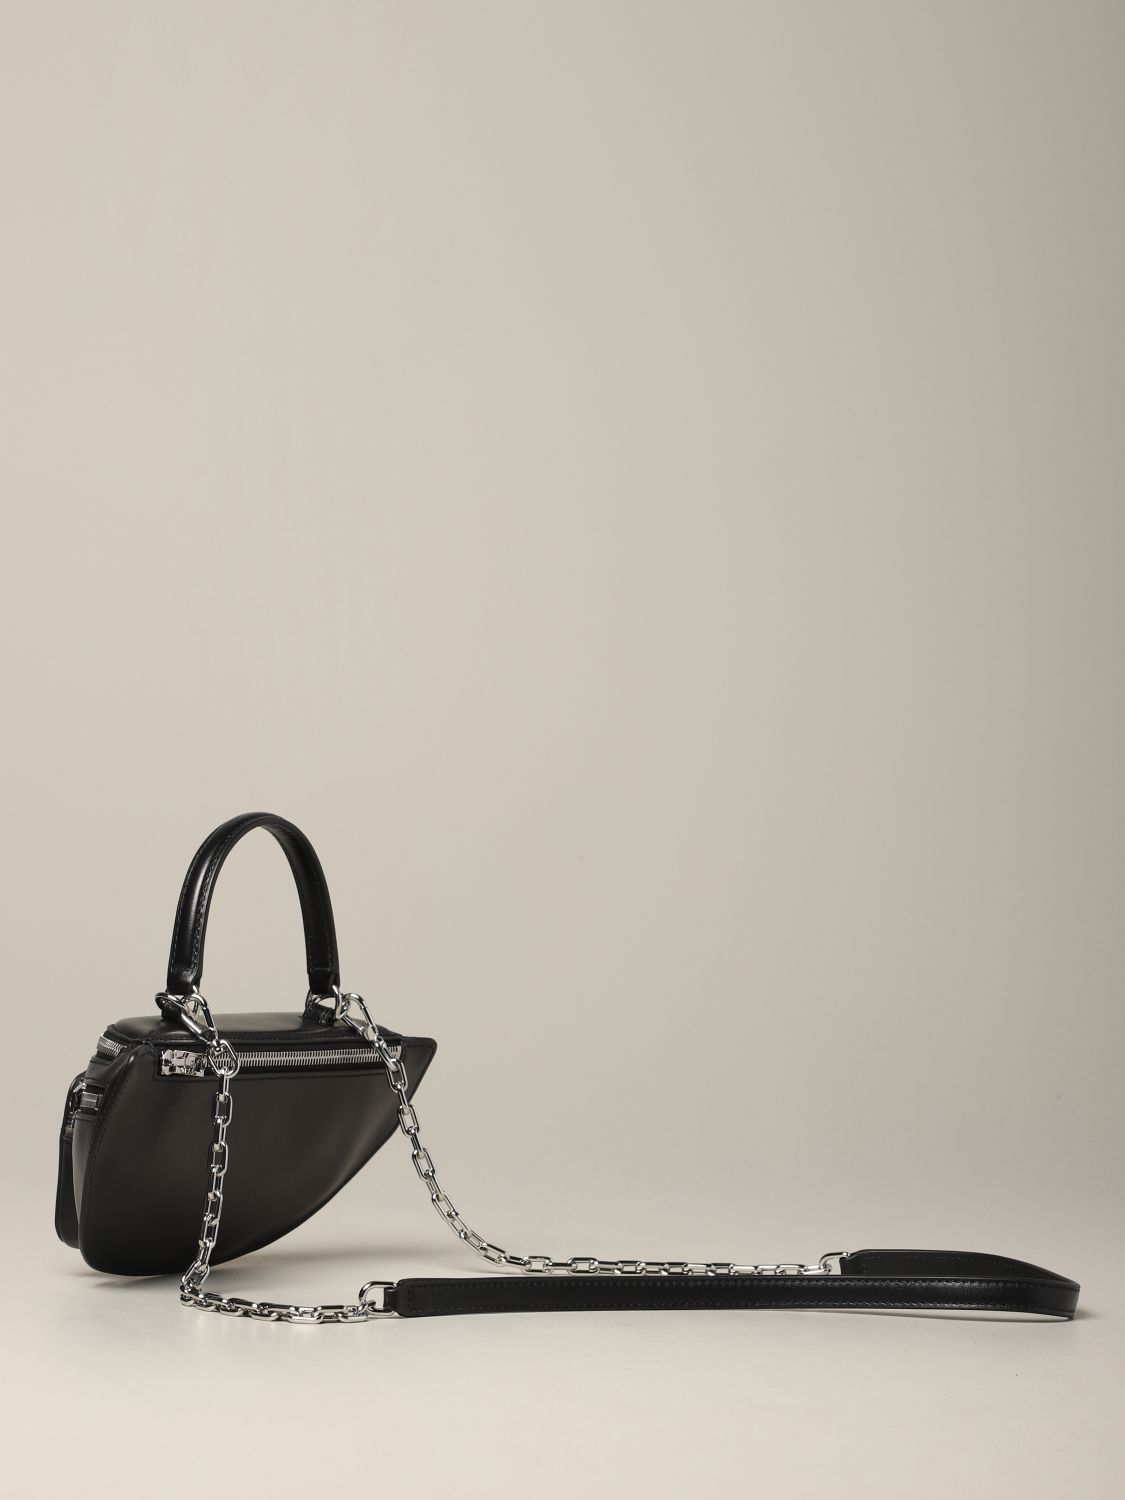 Alexander Wang pouch in full zip leather black 3